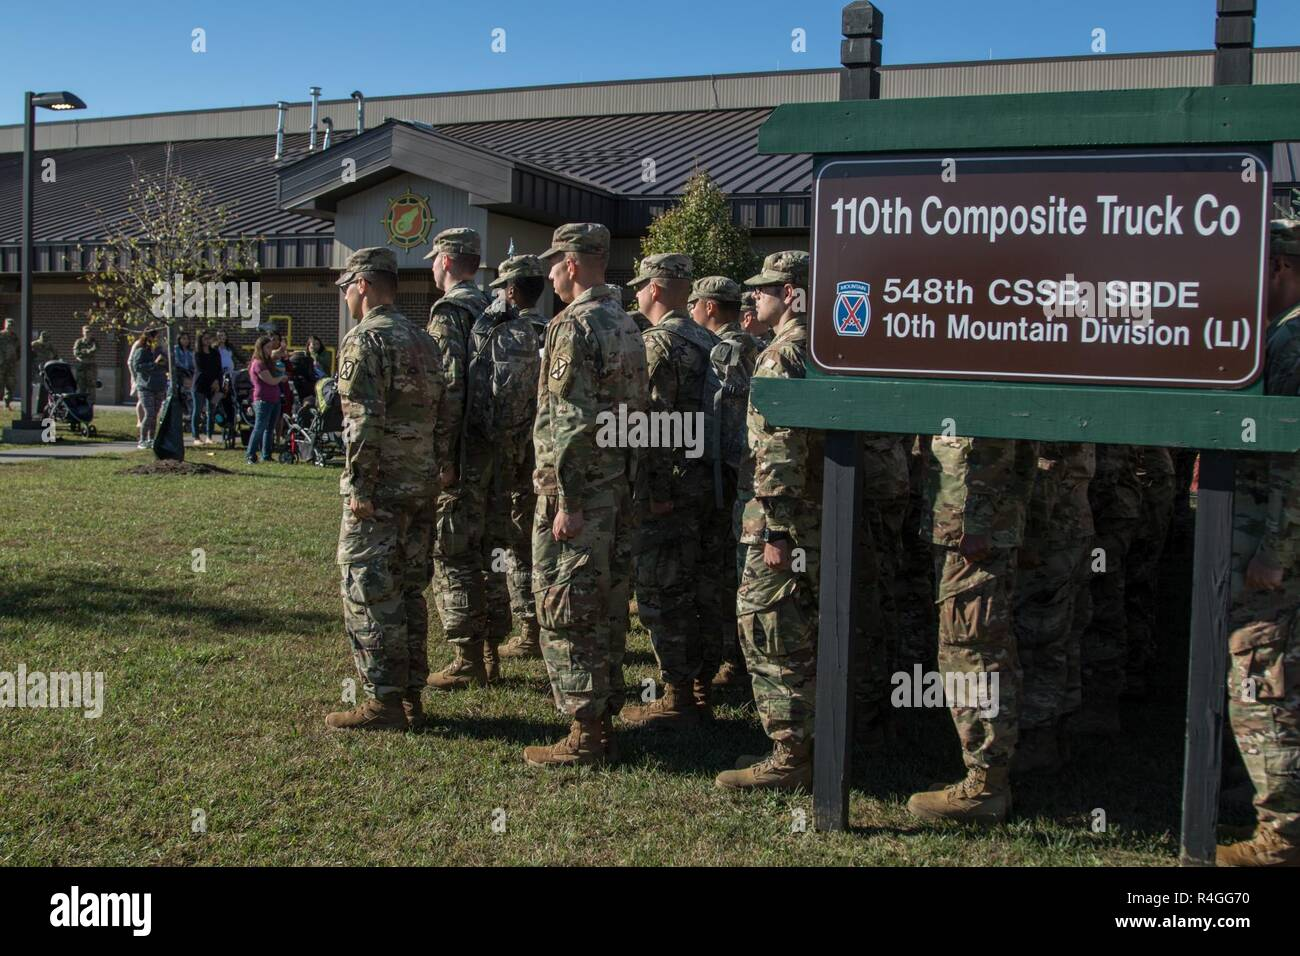 Friends Family Leaders And Fellow Soldiers Came To The 110th Composite Truck Company Headquarters Fort Drum Welcome Home Those Who Went